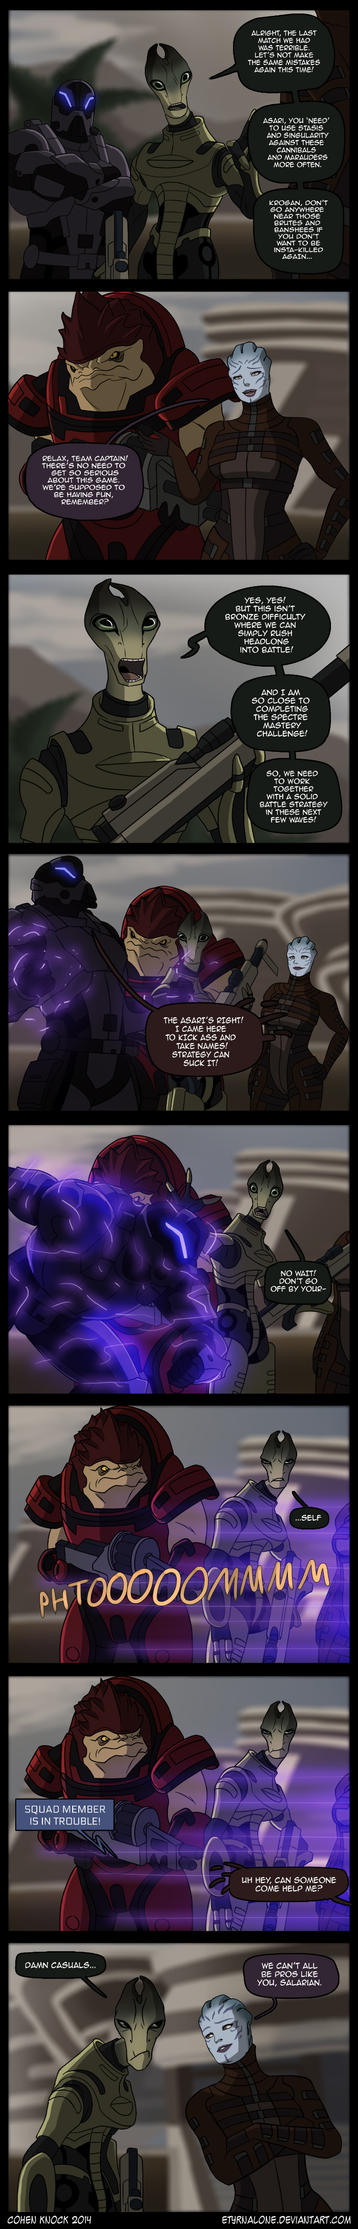 Mass Effect 3 - Strategy Can Suck It! by EtyrnalOne